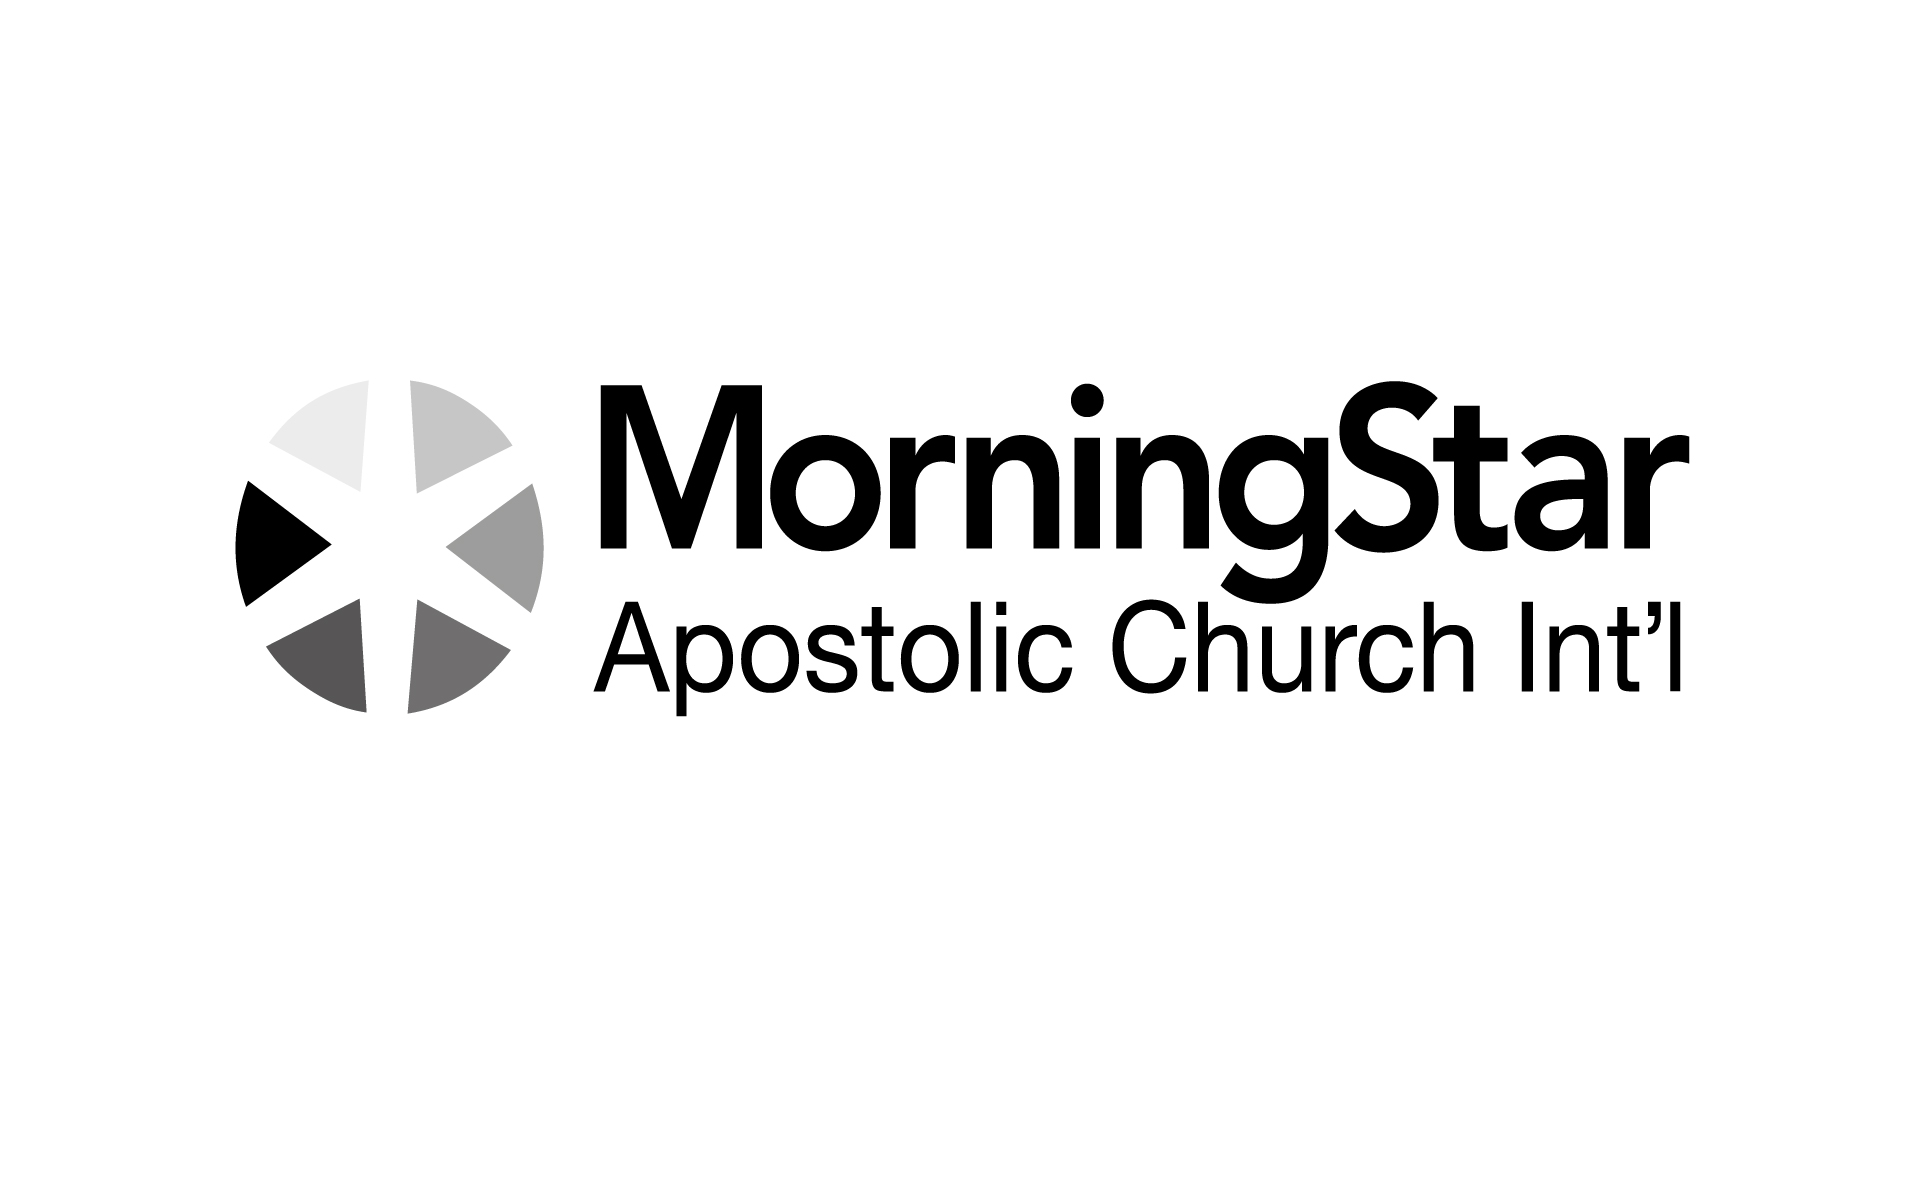 MorningStar Apostolic Church Intl of Gilbert, AZ